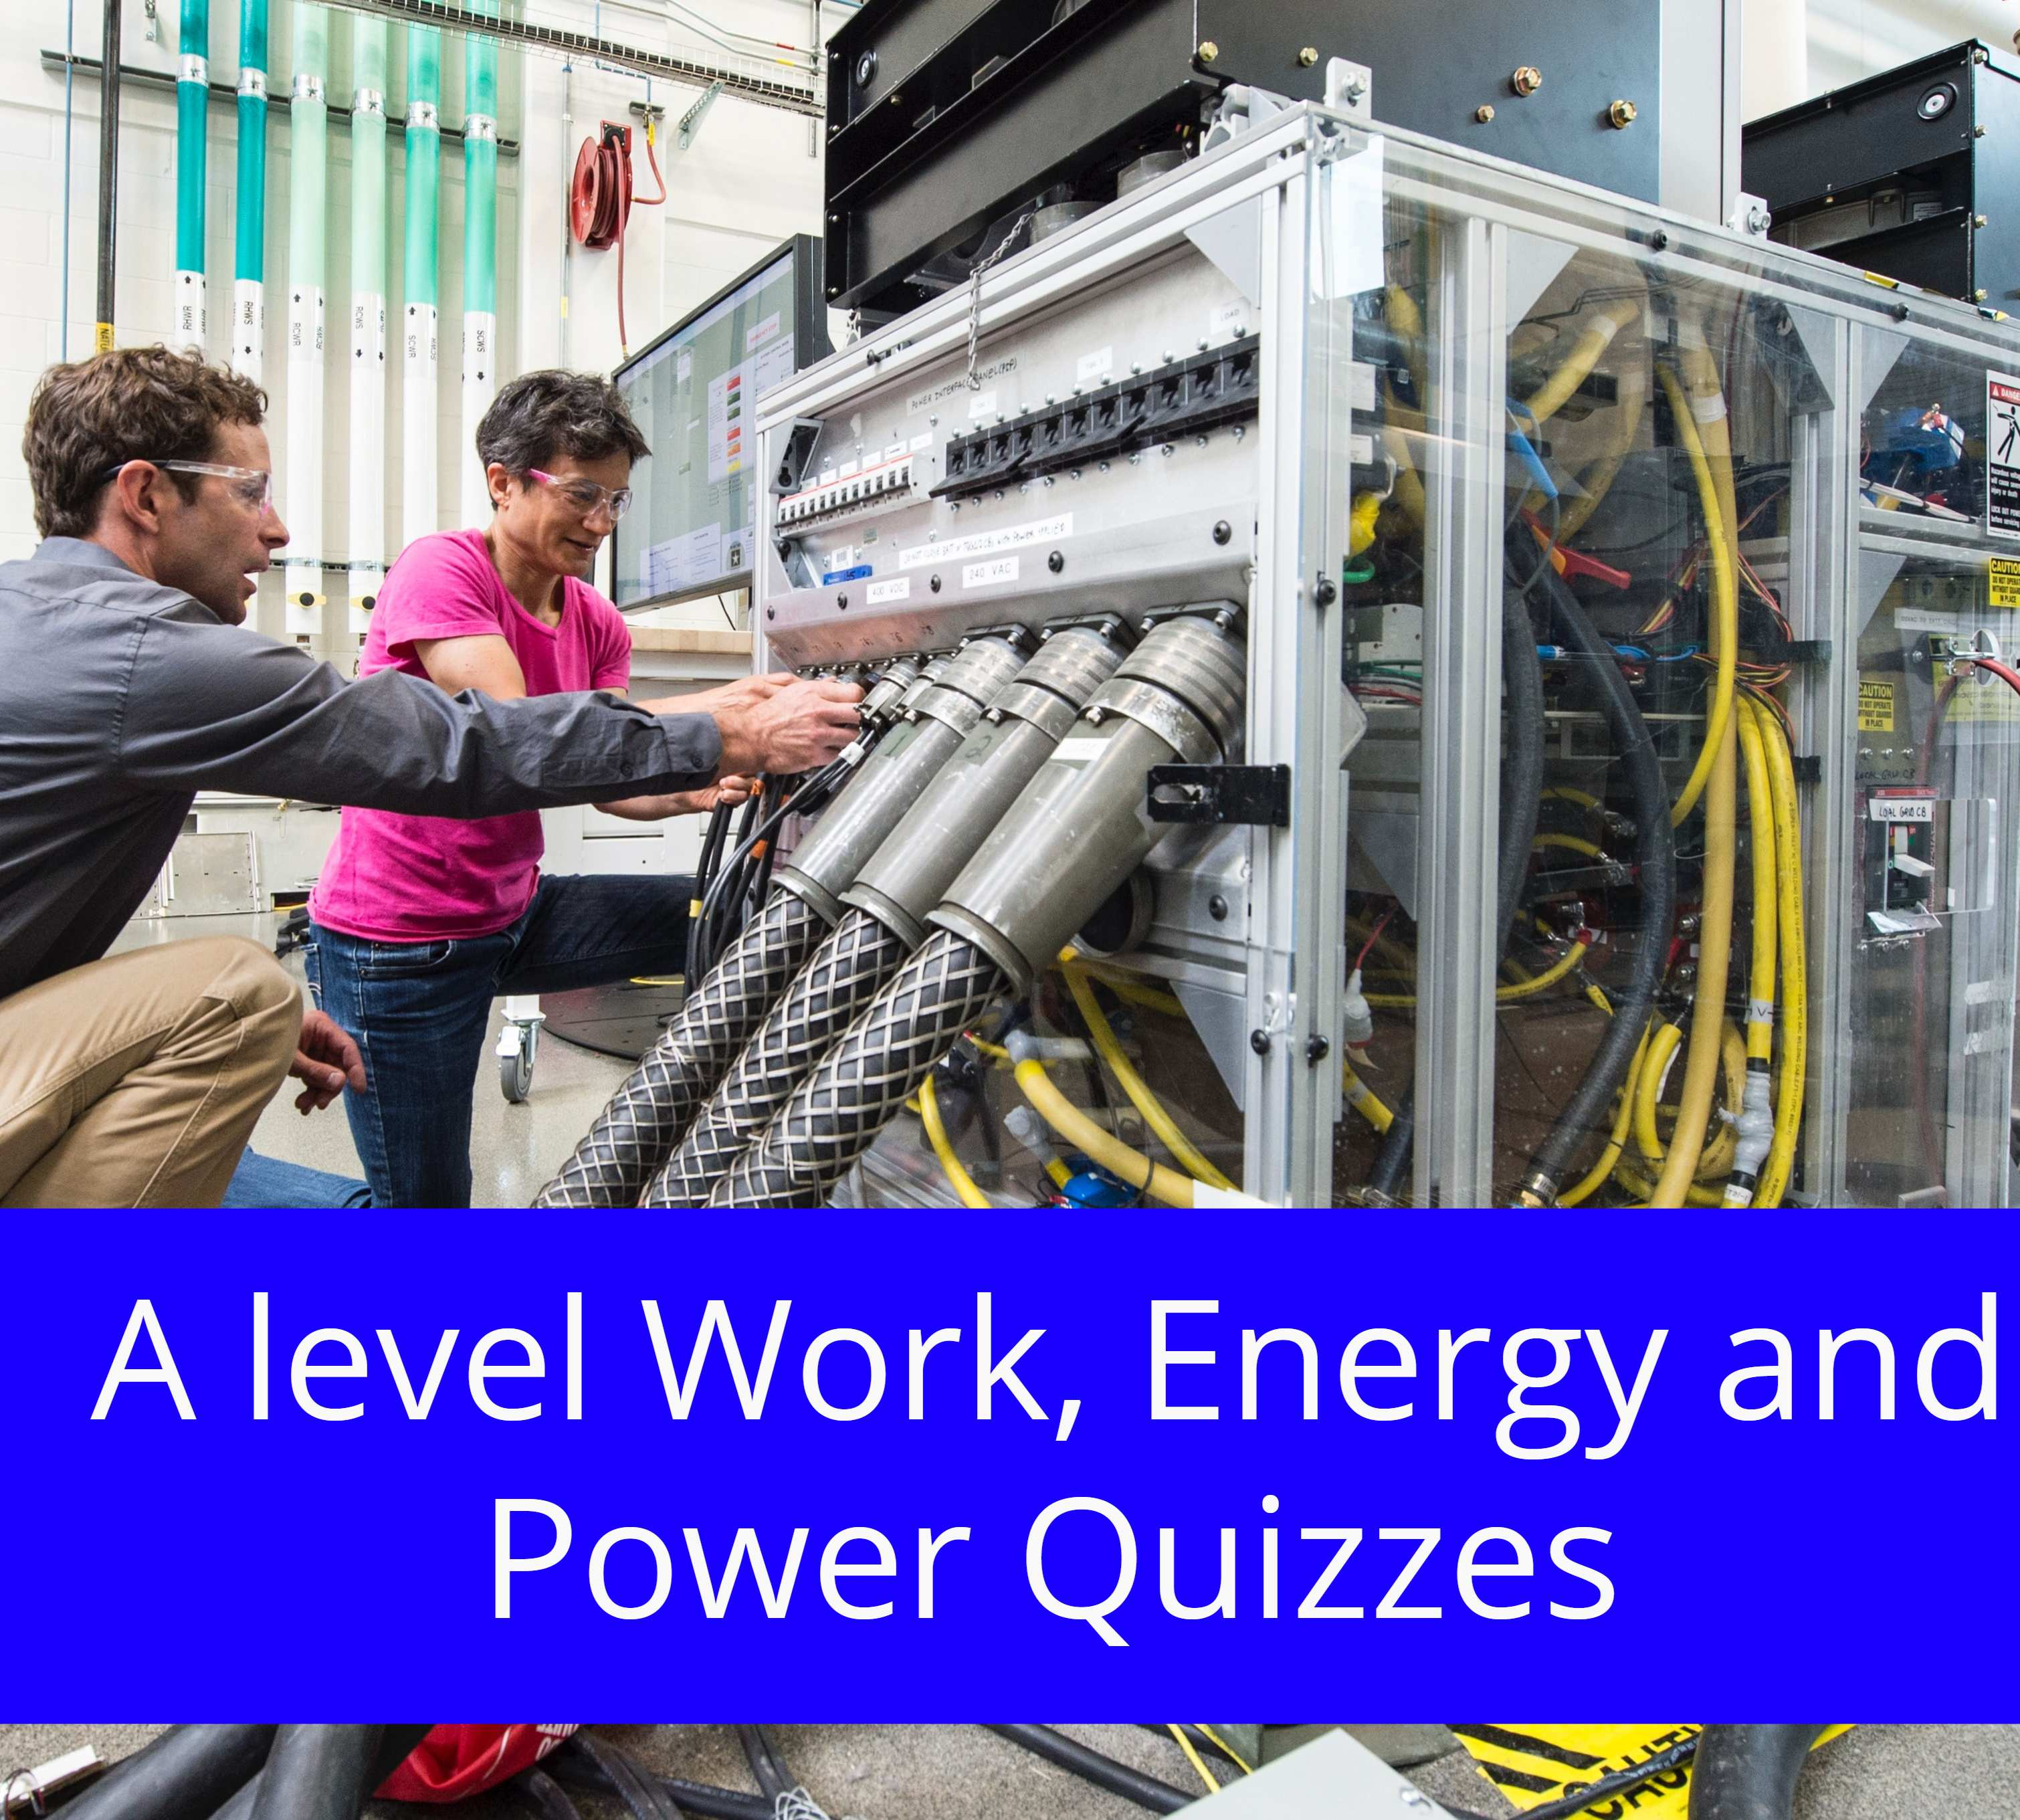 A level Work, Energy and Power Quizzes